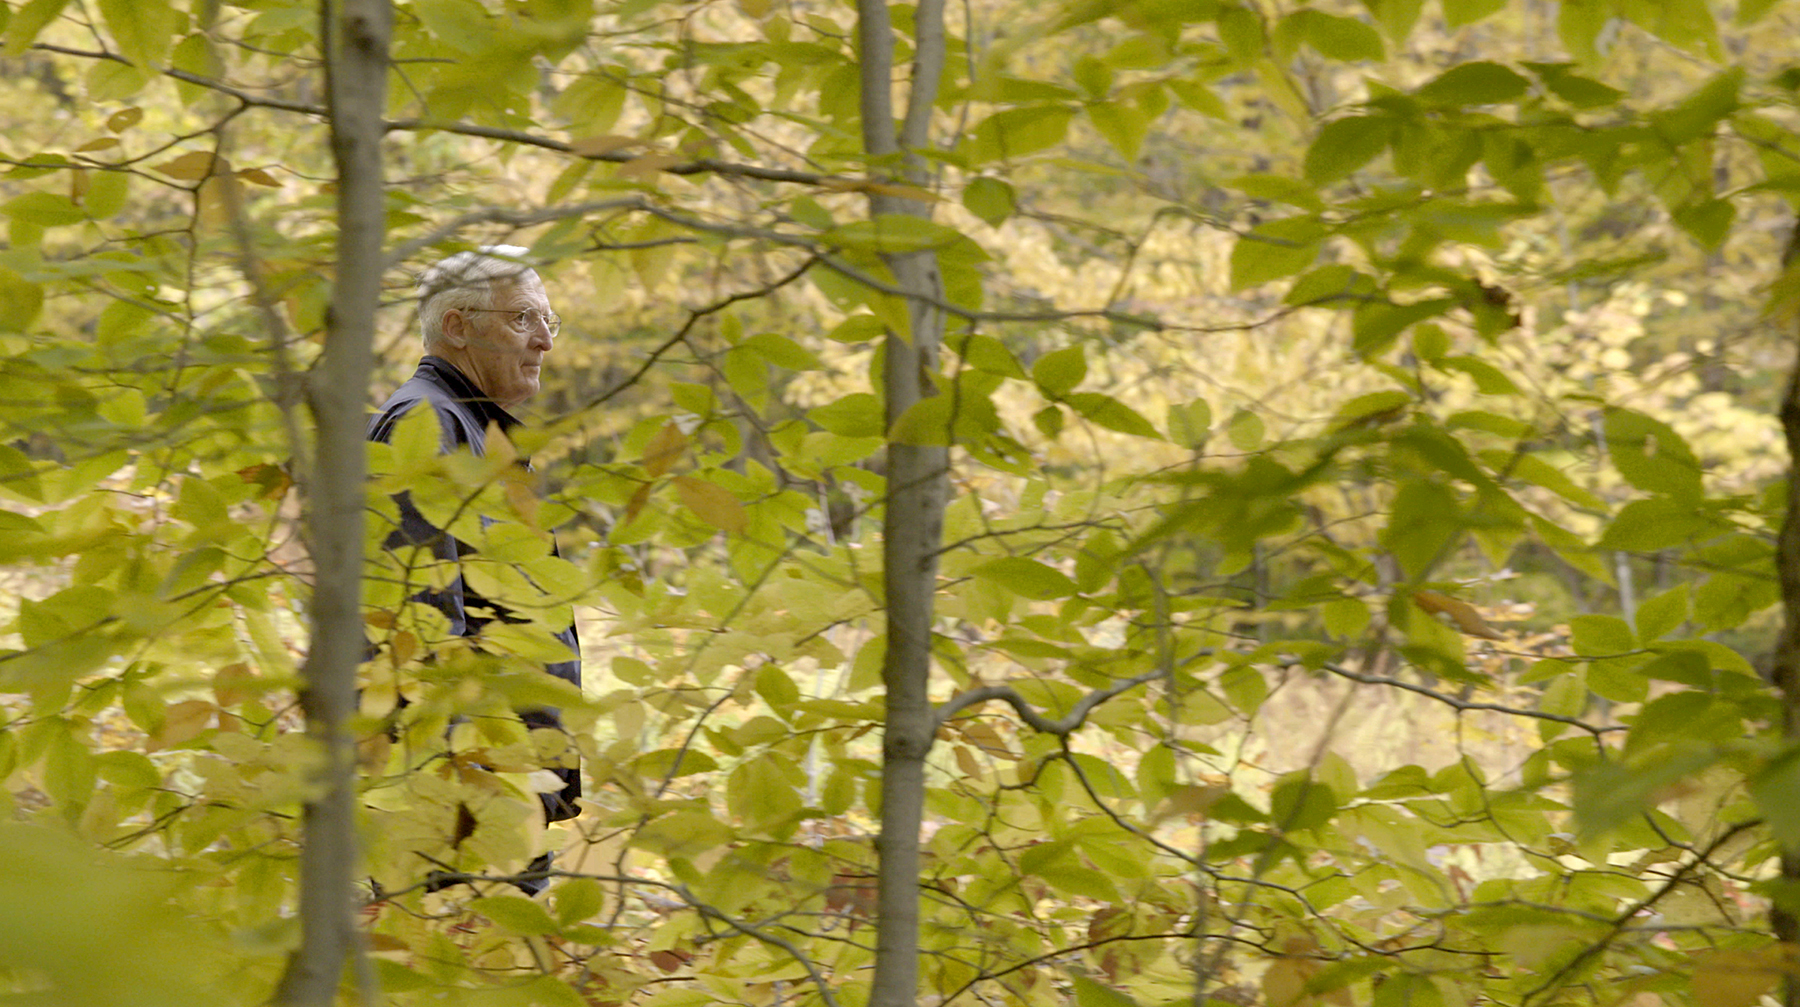 Man walking in forest of fall leaves